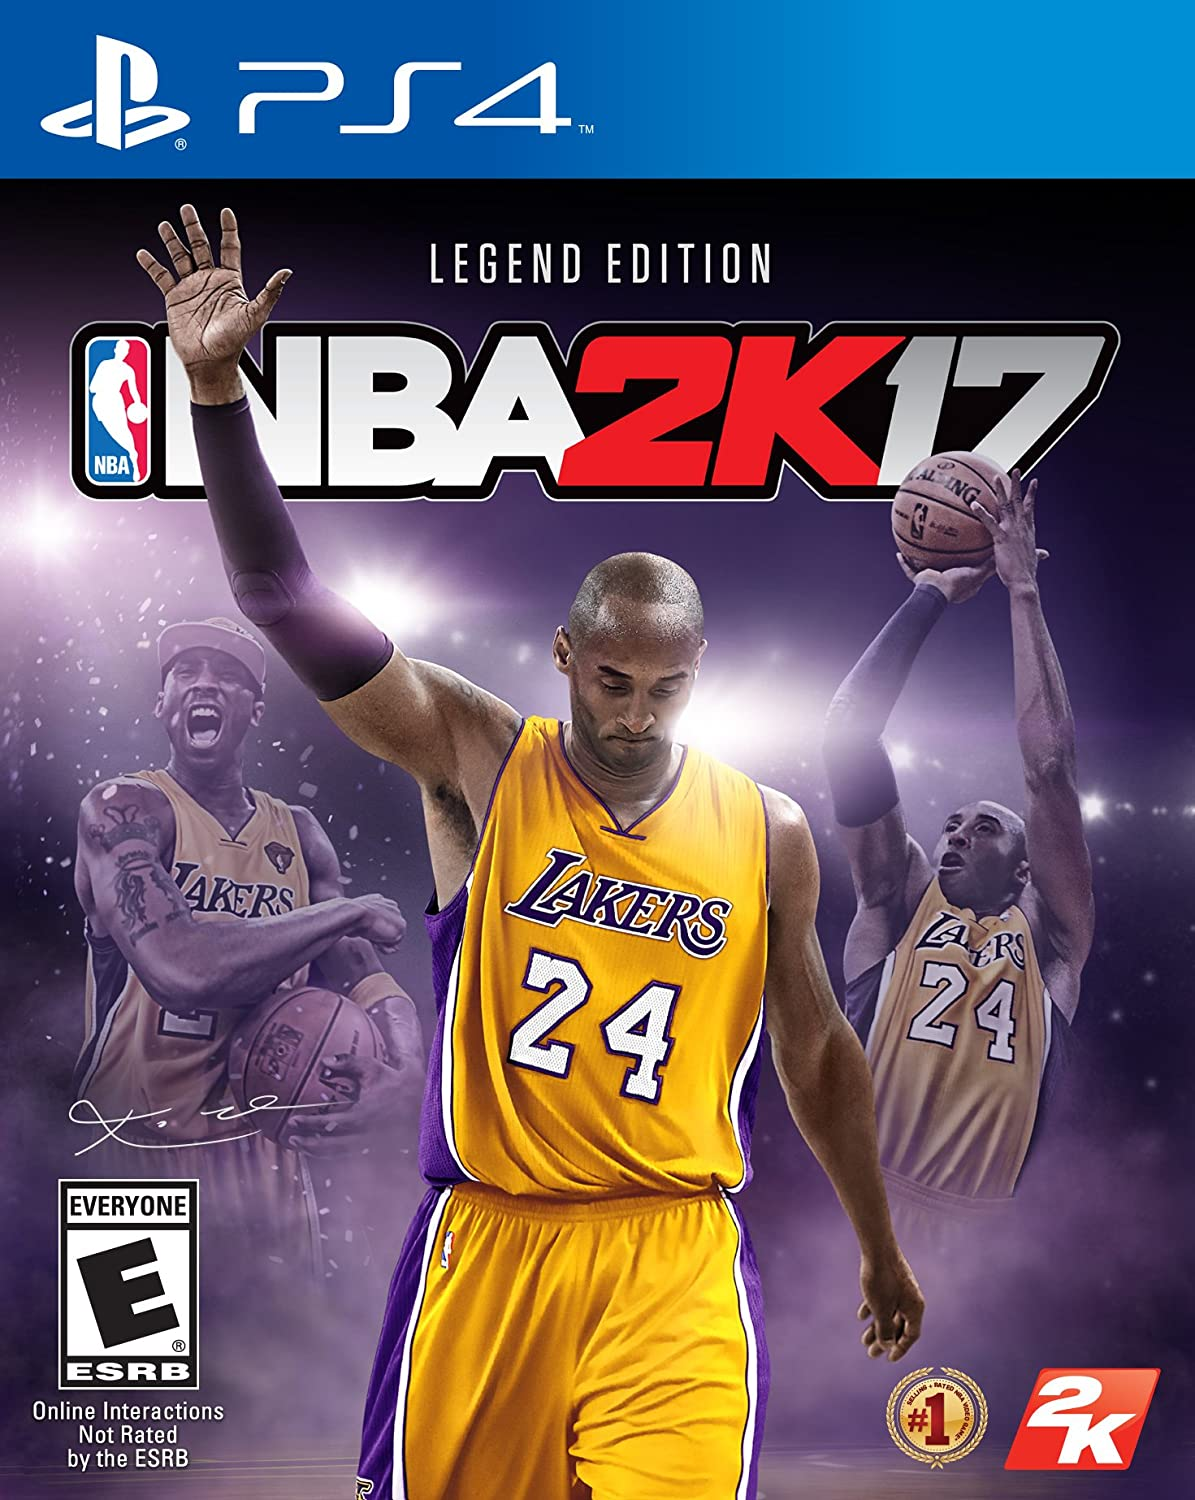 eb38df1d0b Amazon.com  NBA 2K17- Legends Gold - Xbox One  Nba 2k17 Legend Edition  Gold  Video Games